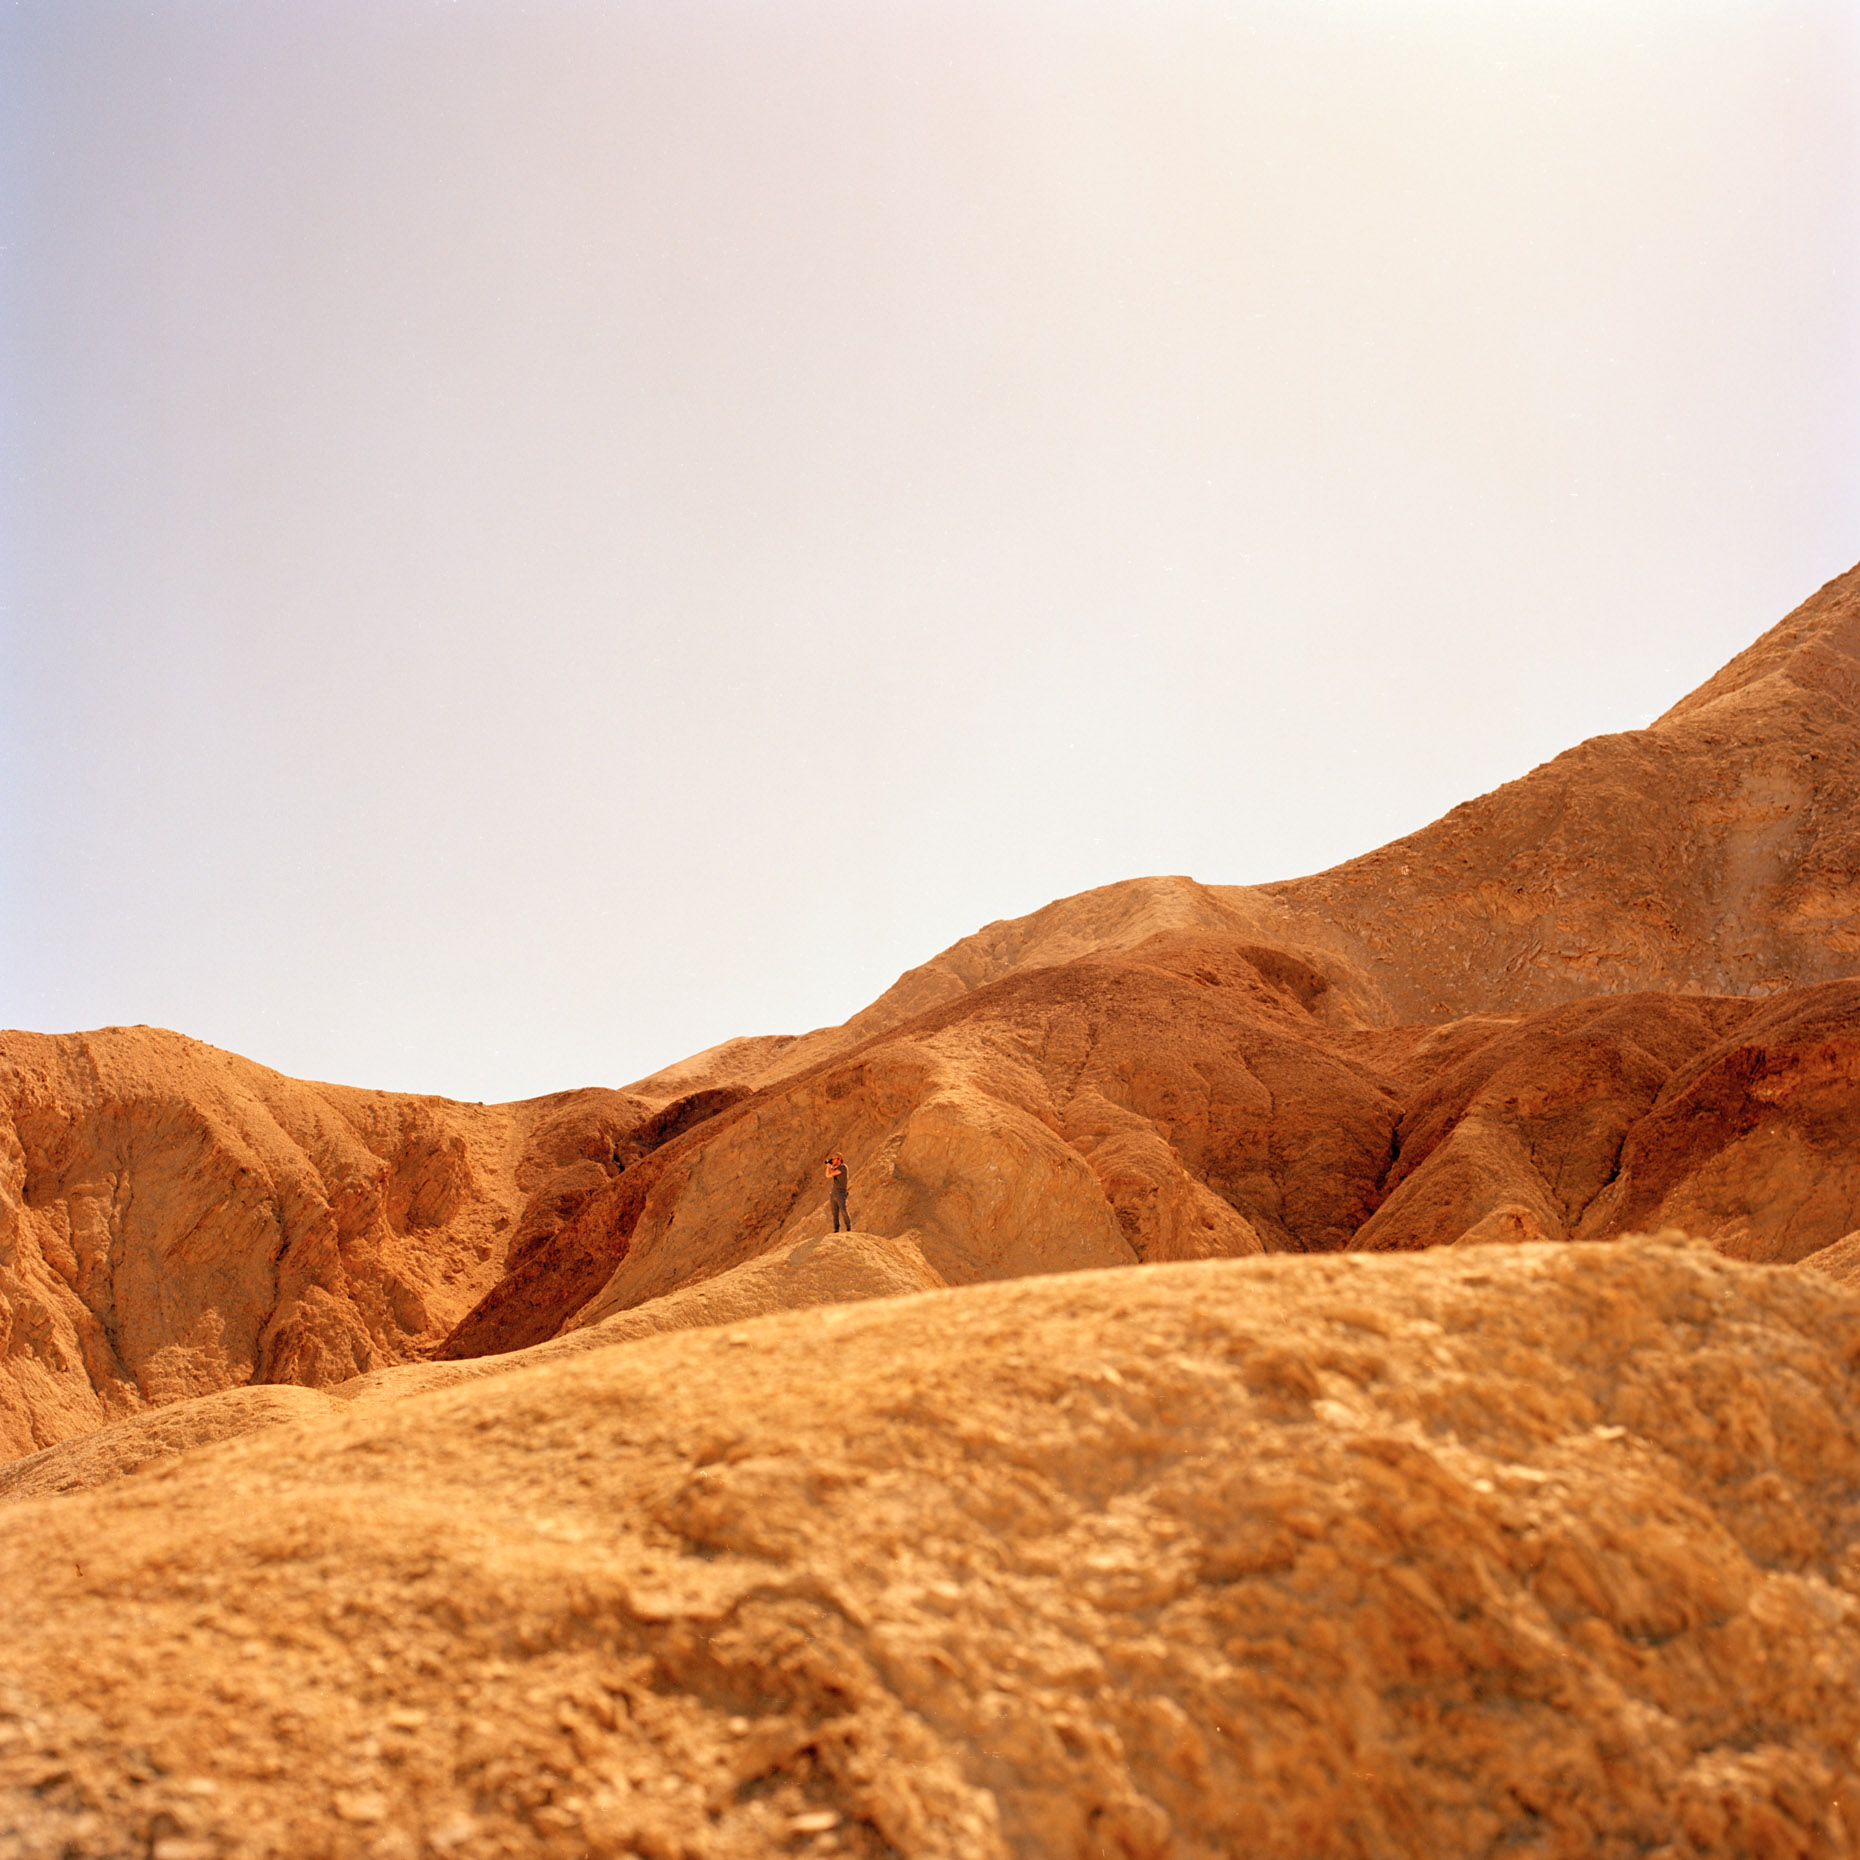 Golden rocks bake in the desert sun at Zabriskie Point, Death Valley in California.